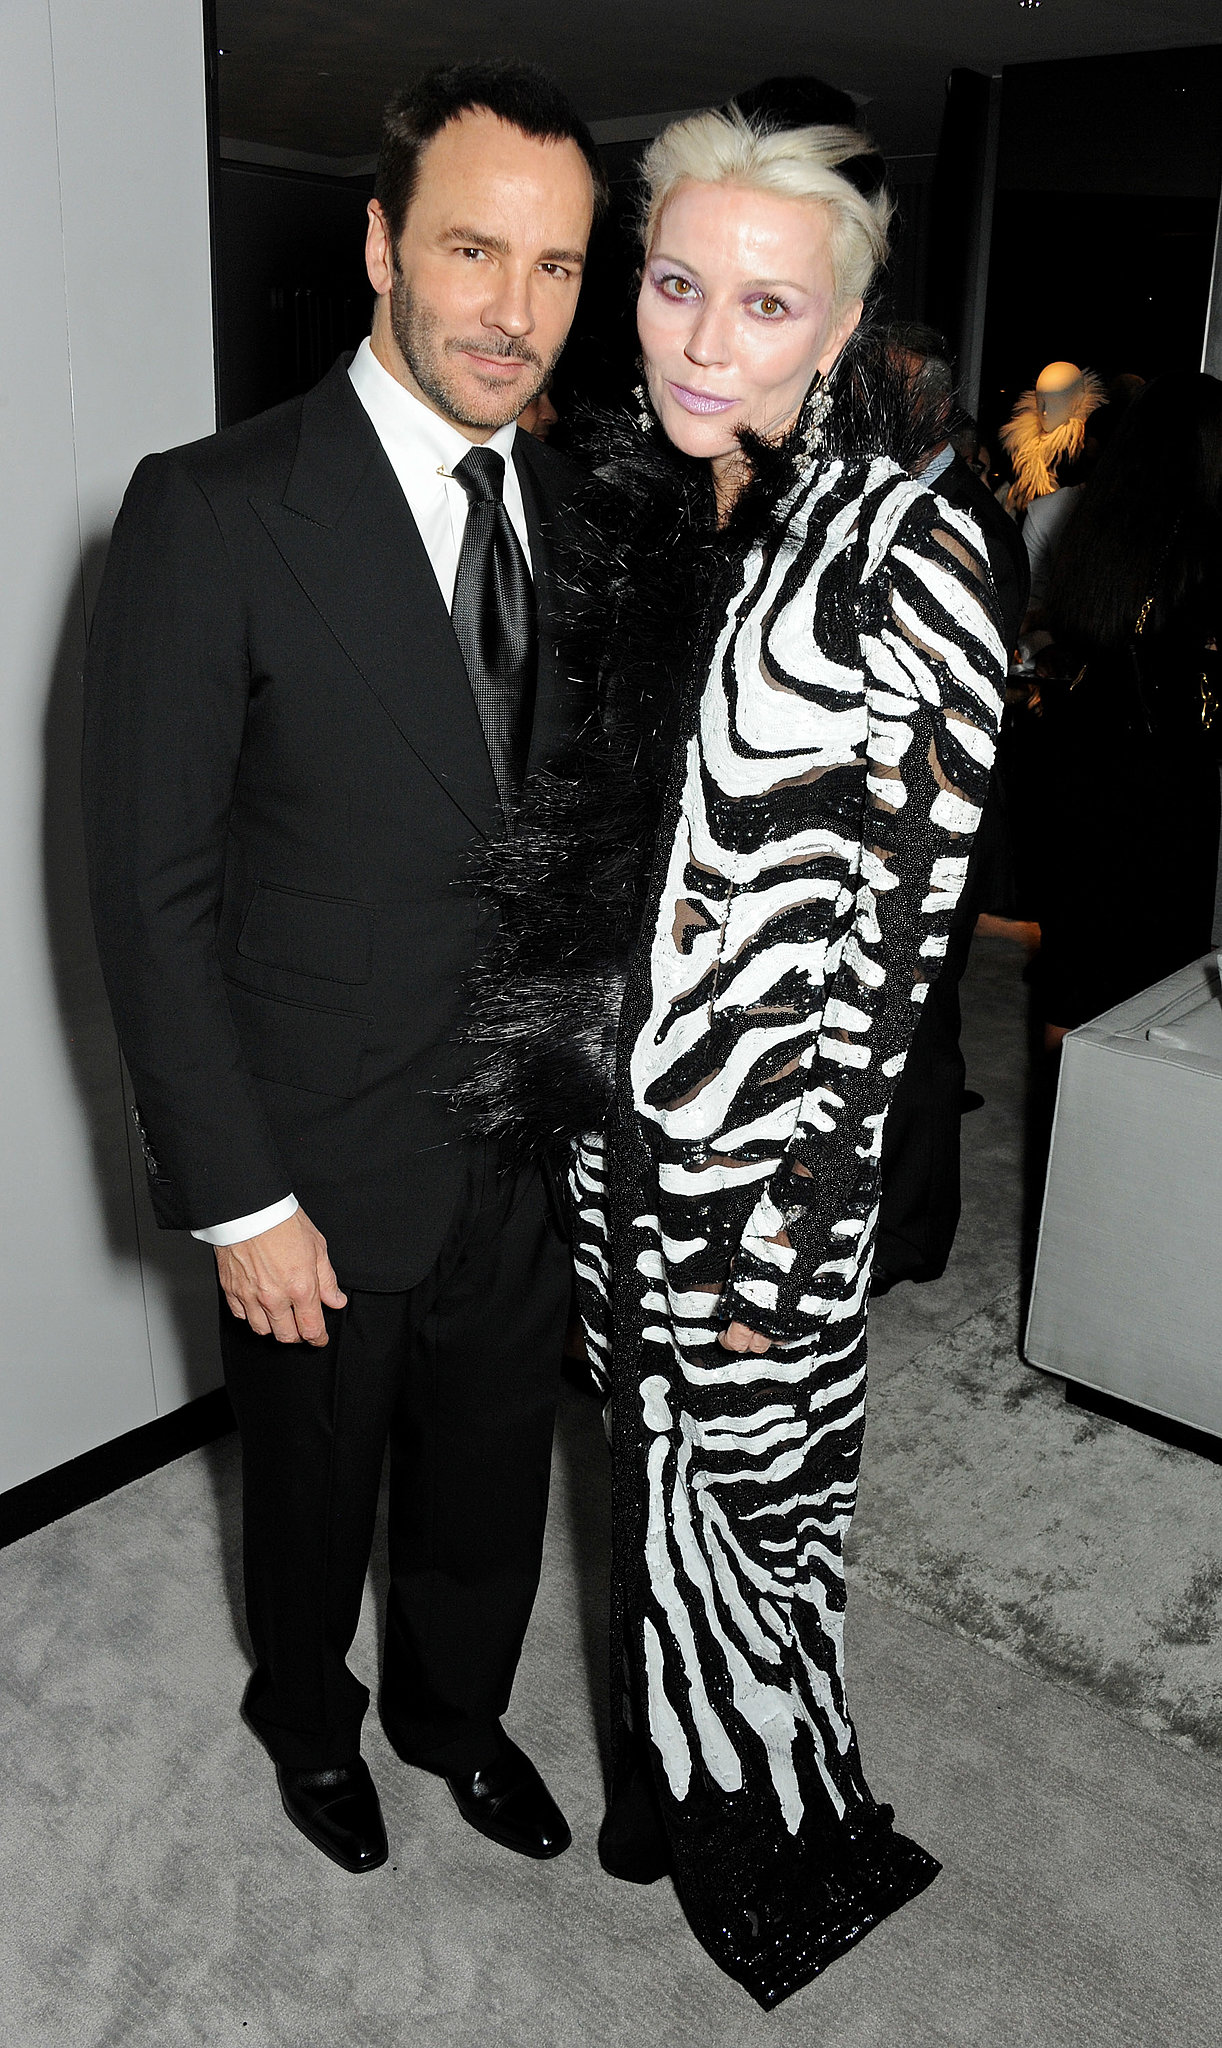 Daphne Guinness joined Tom Ford in his black and white column for the designer's London flagship opening.